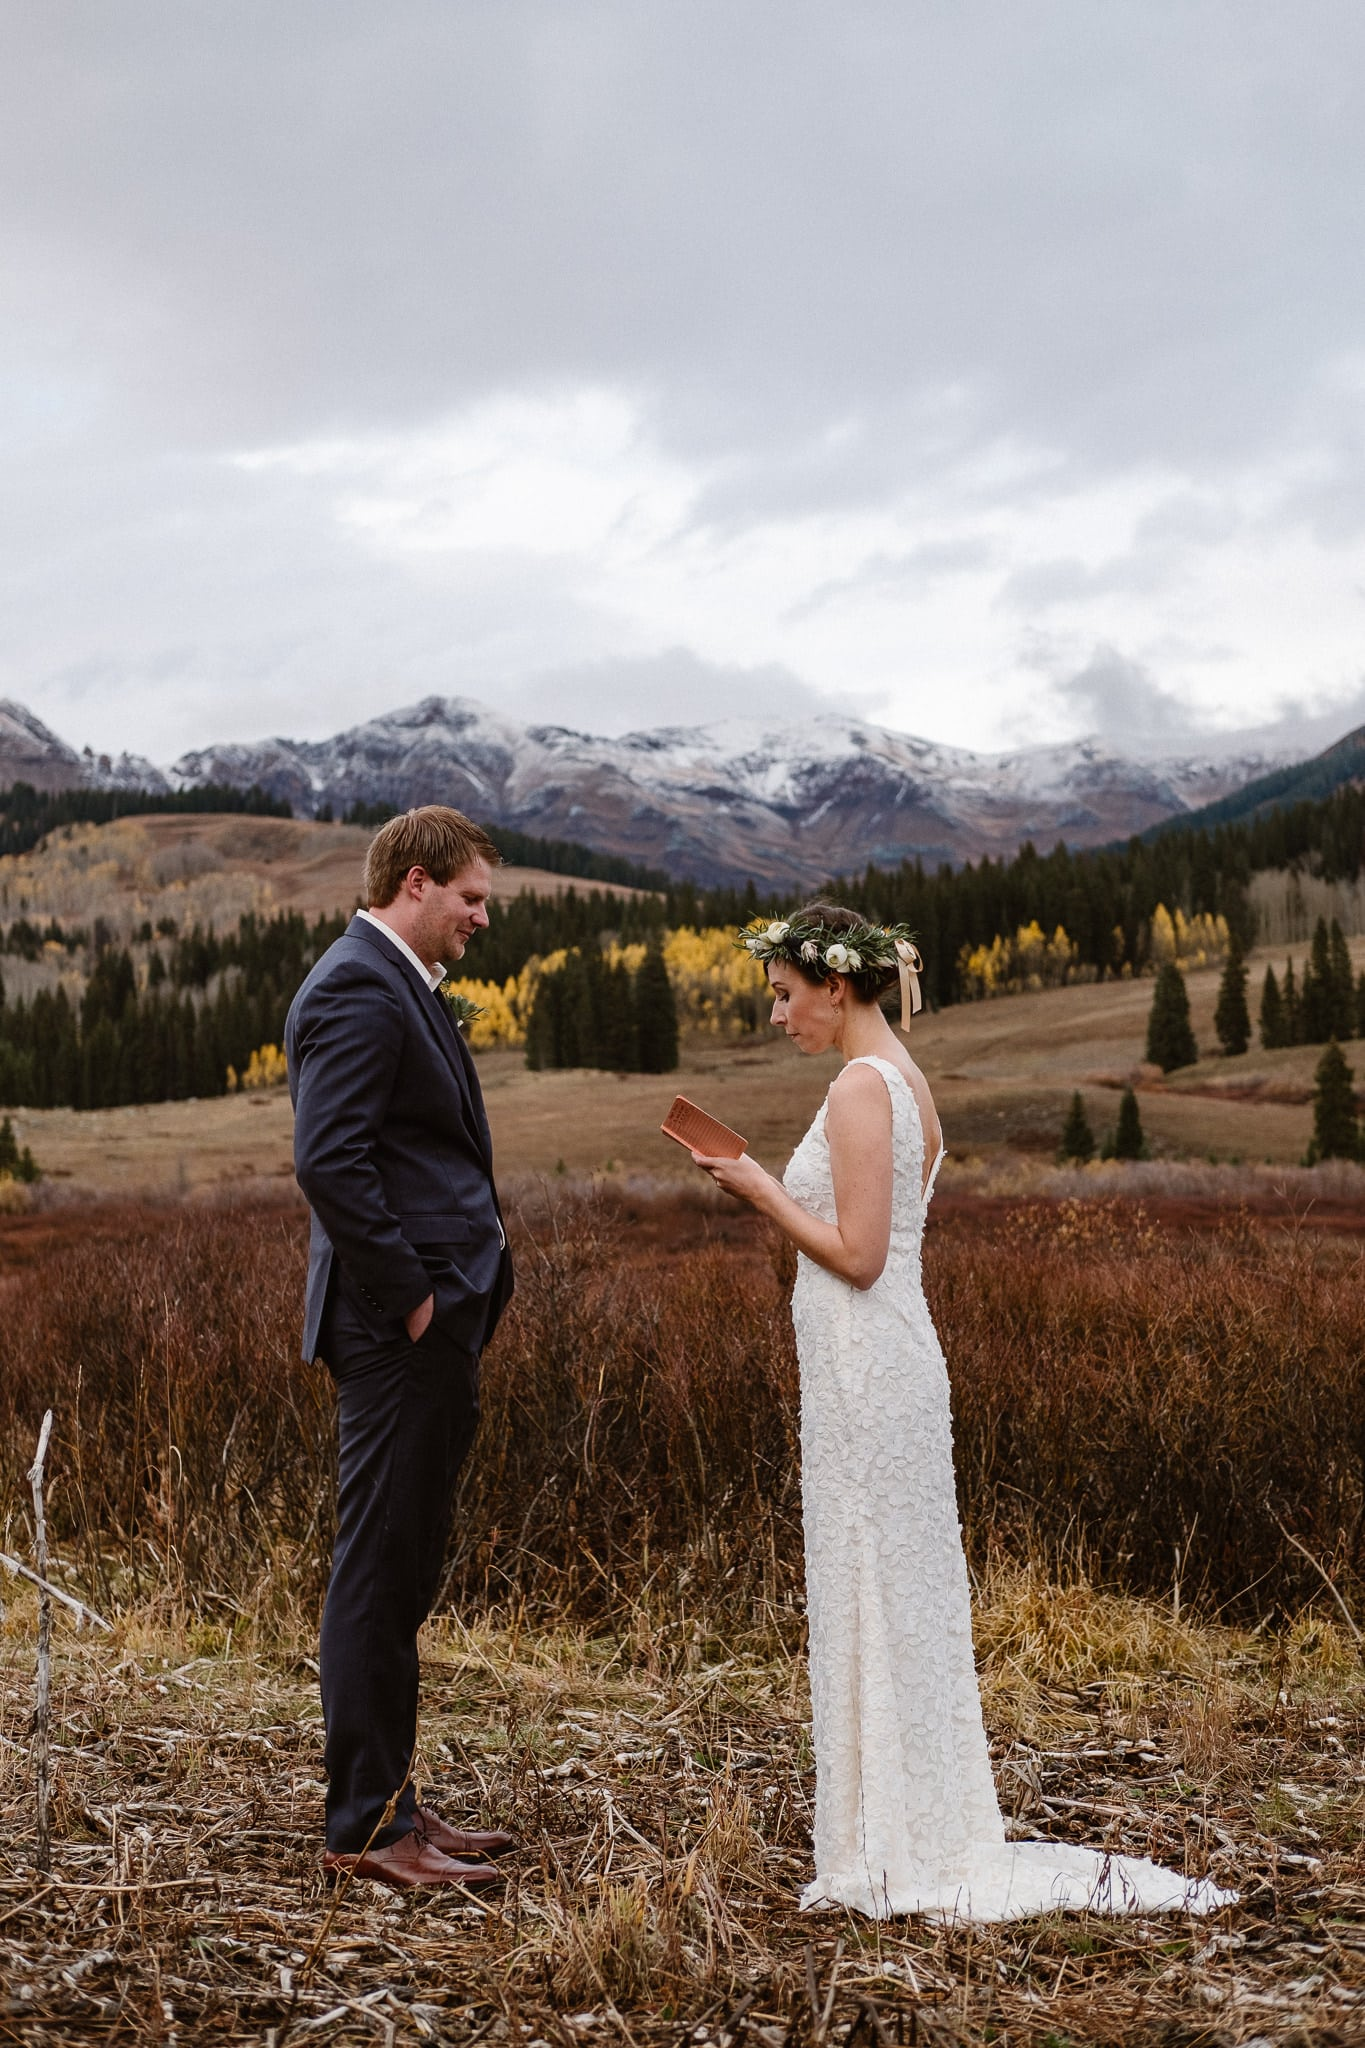 Crested Butte Wedding Photographer, Scarp Ridge Lodge intimate elopement, self solemnized elopement in Colorado, bride and groom portraits, Colorado mountain adventure wedding